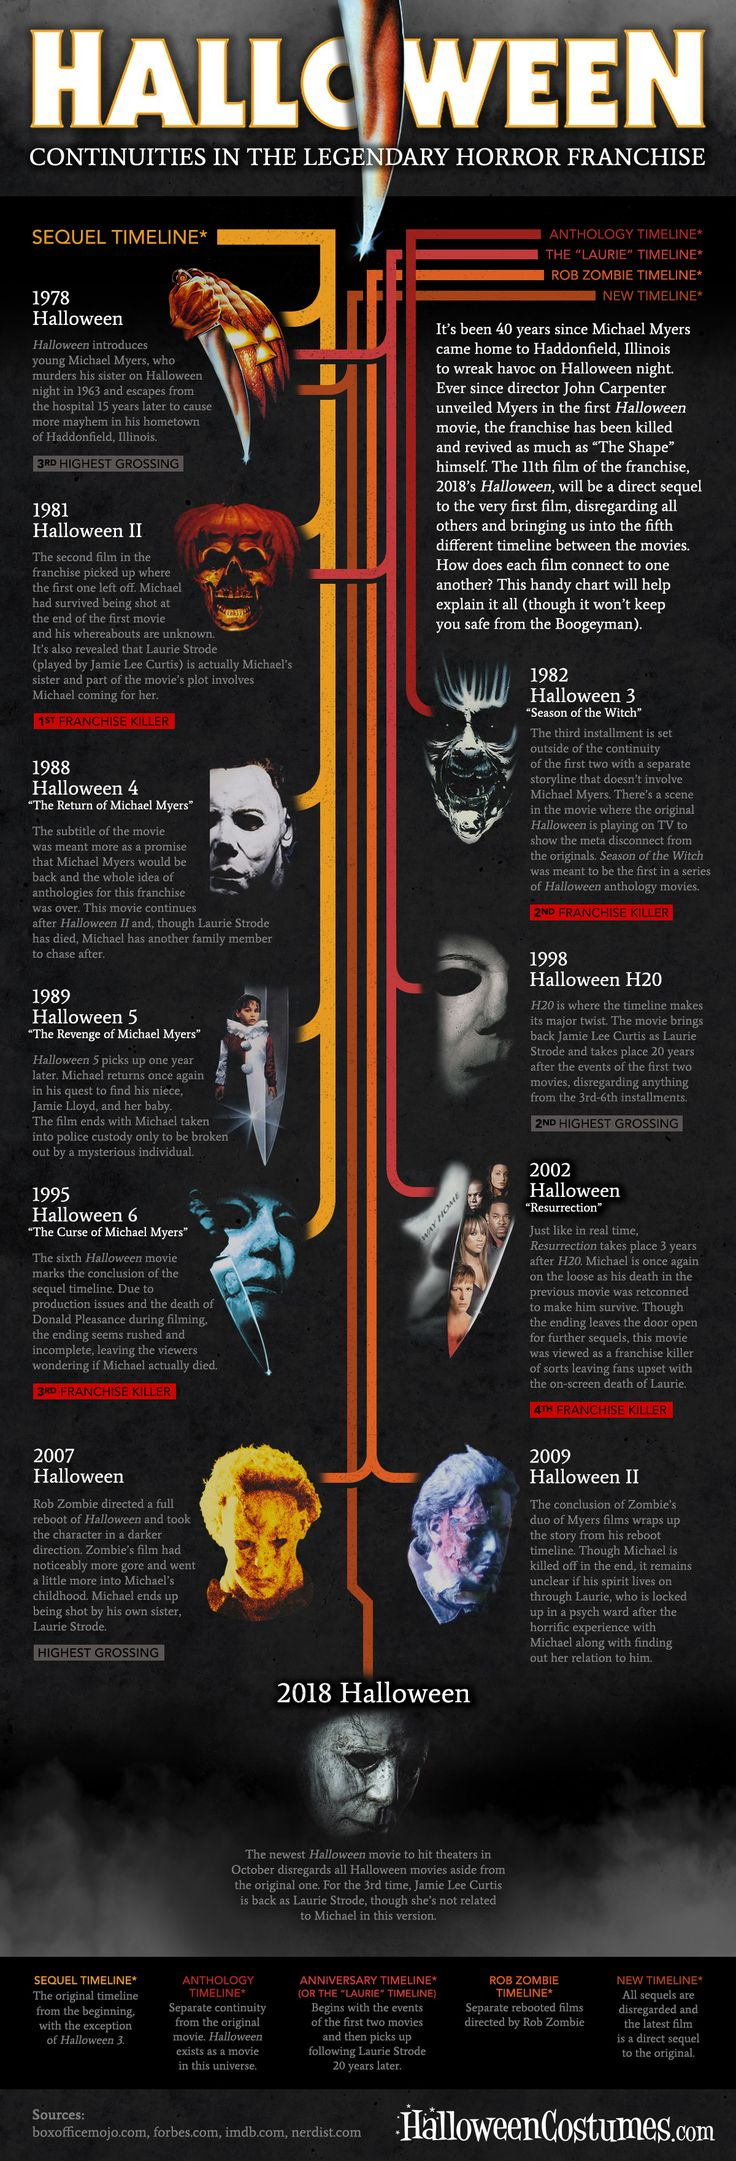 Halloween: The Timelines of Michael Myers [Infographic]